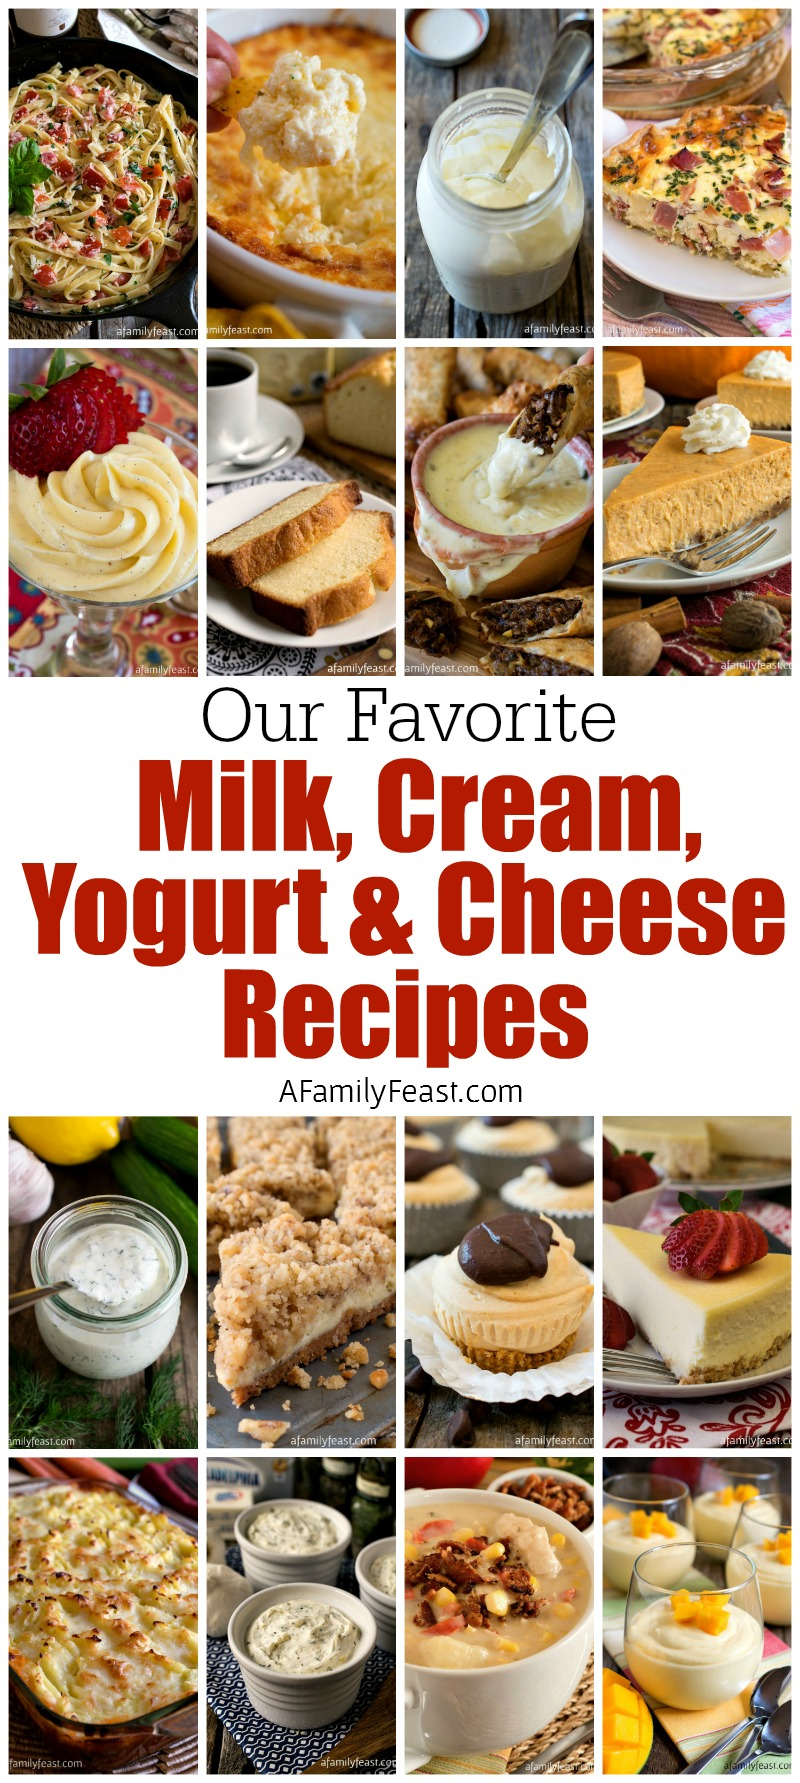 A delicious collection of Milk, Cream, Yogurt and Cheese Recipes plus a visit to a CT dairy farm to see how dairy cows are bred.